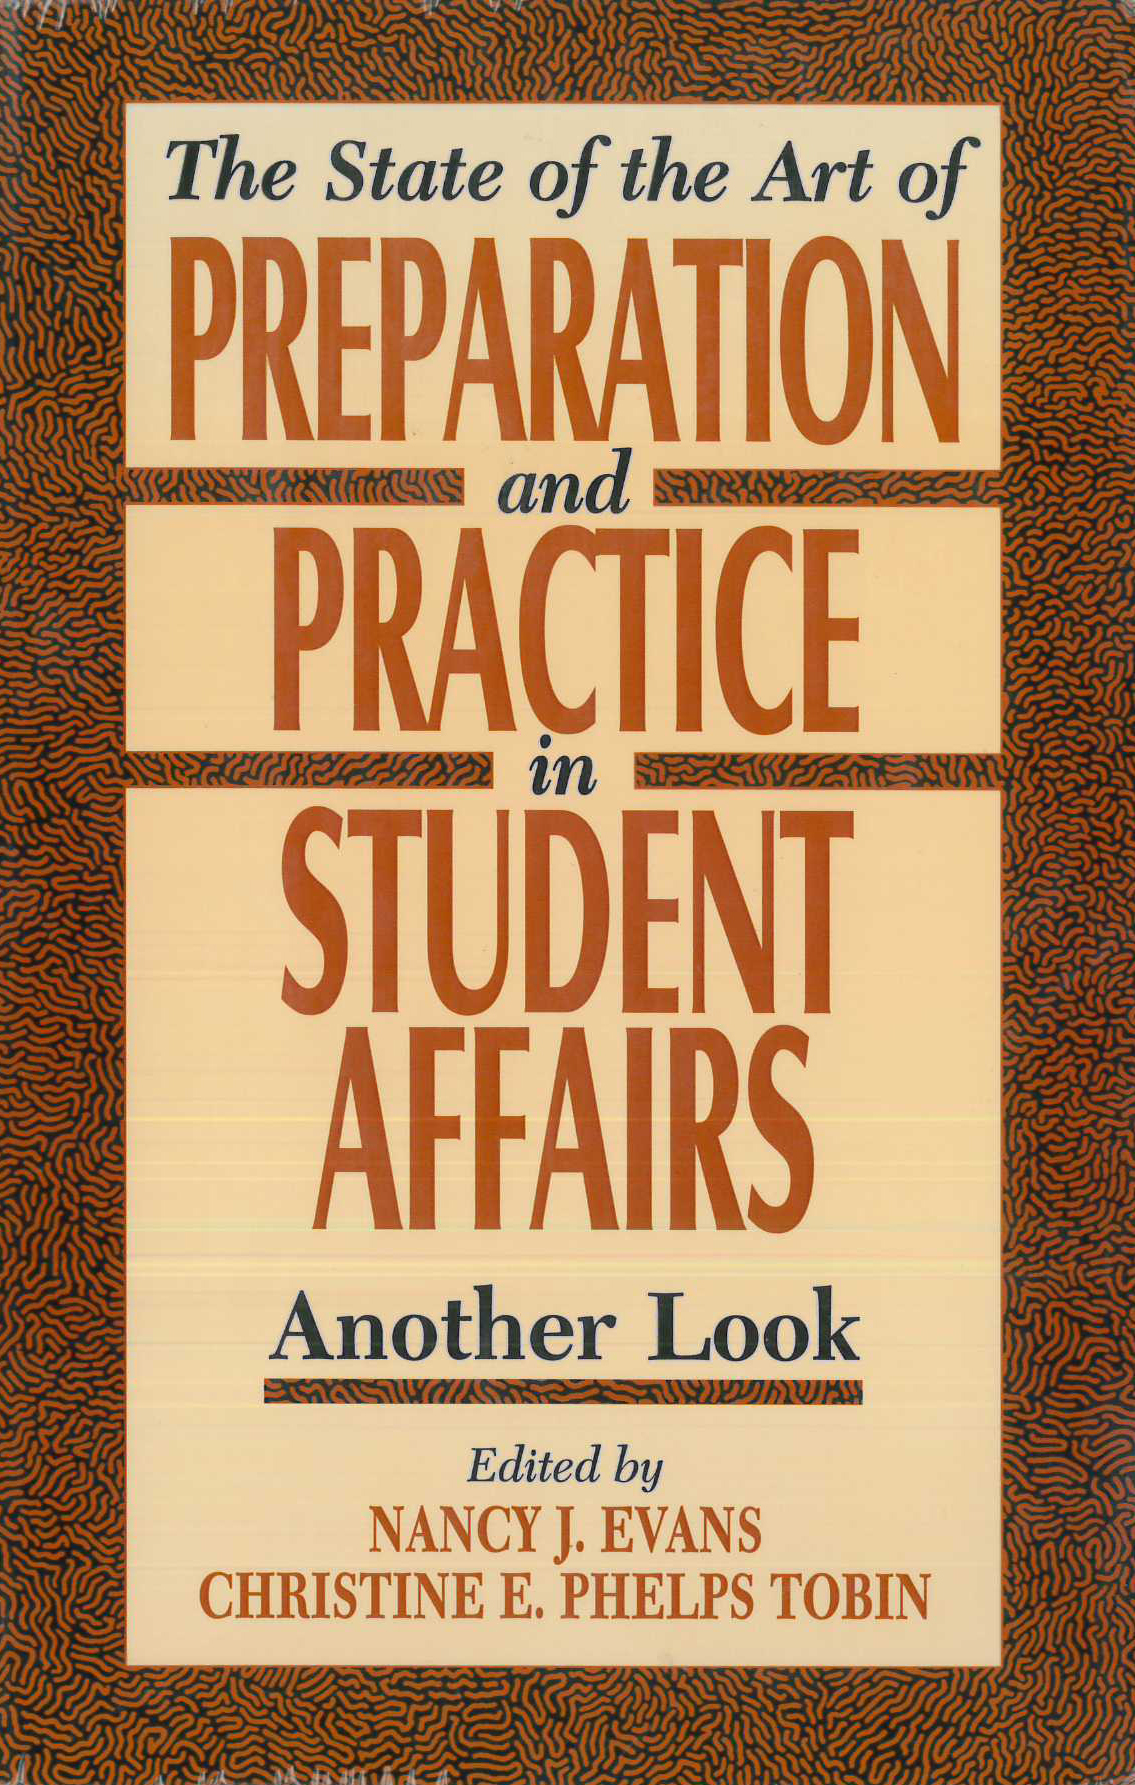 State of the Art of Preparation and Practice in Student Affairs: Another Look